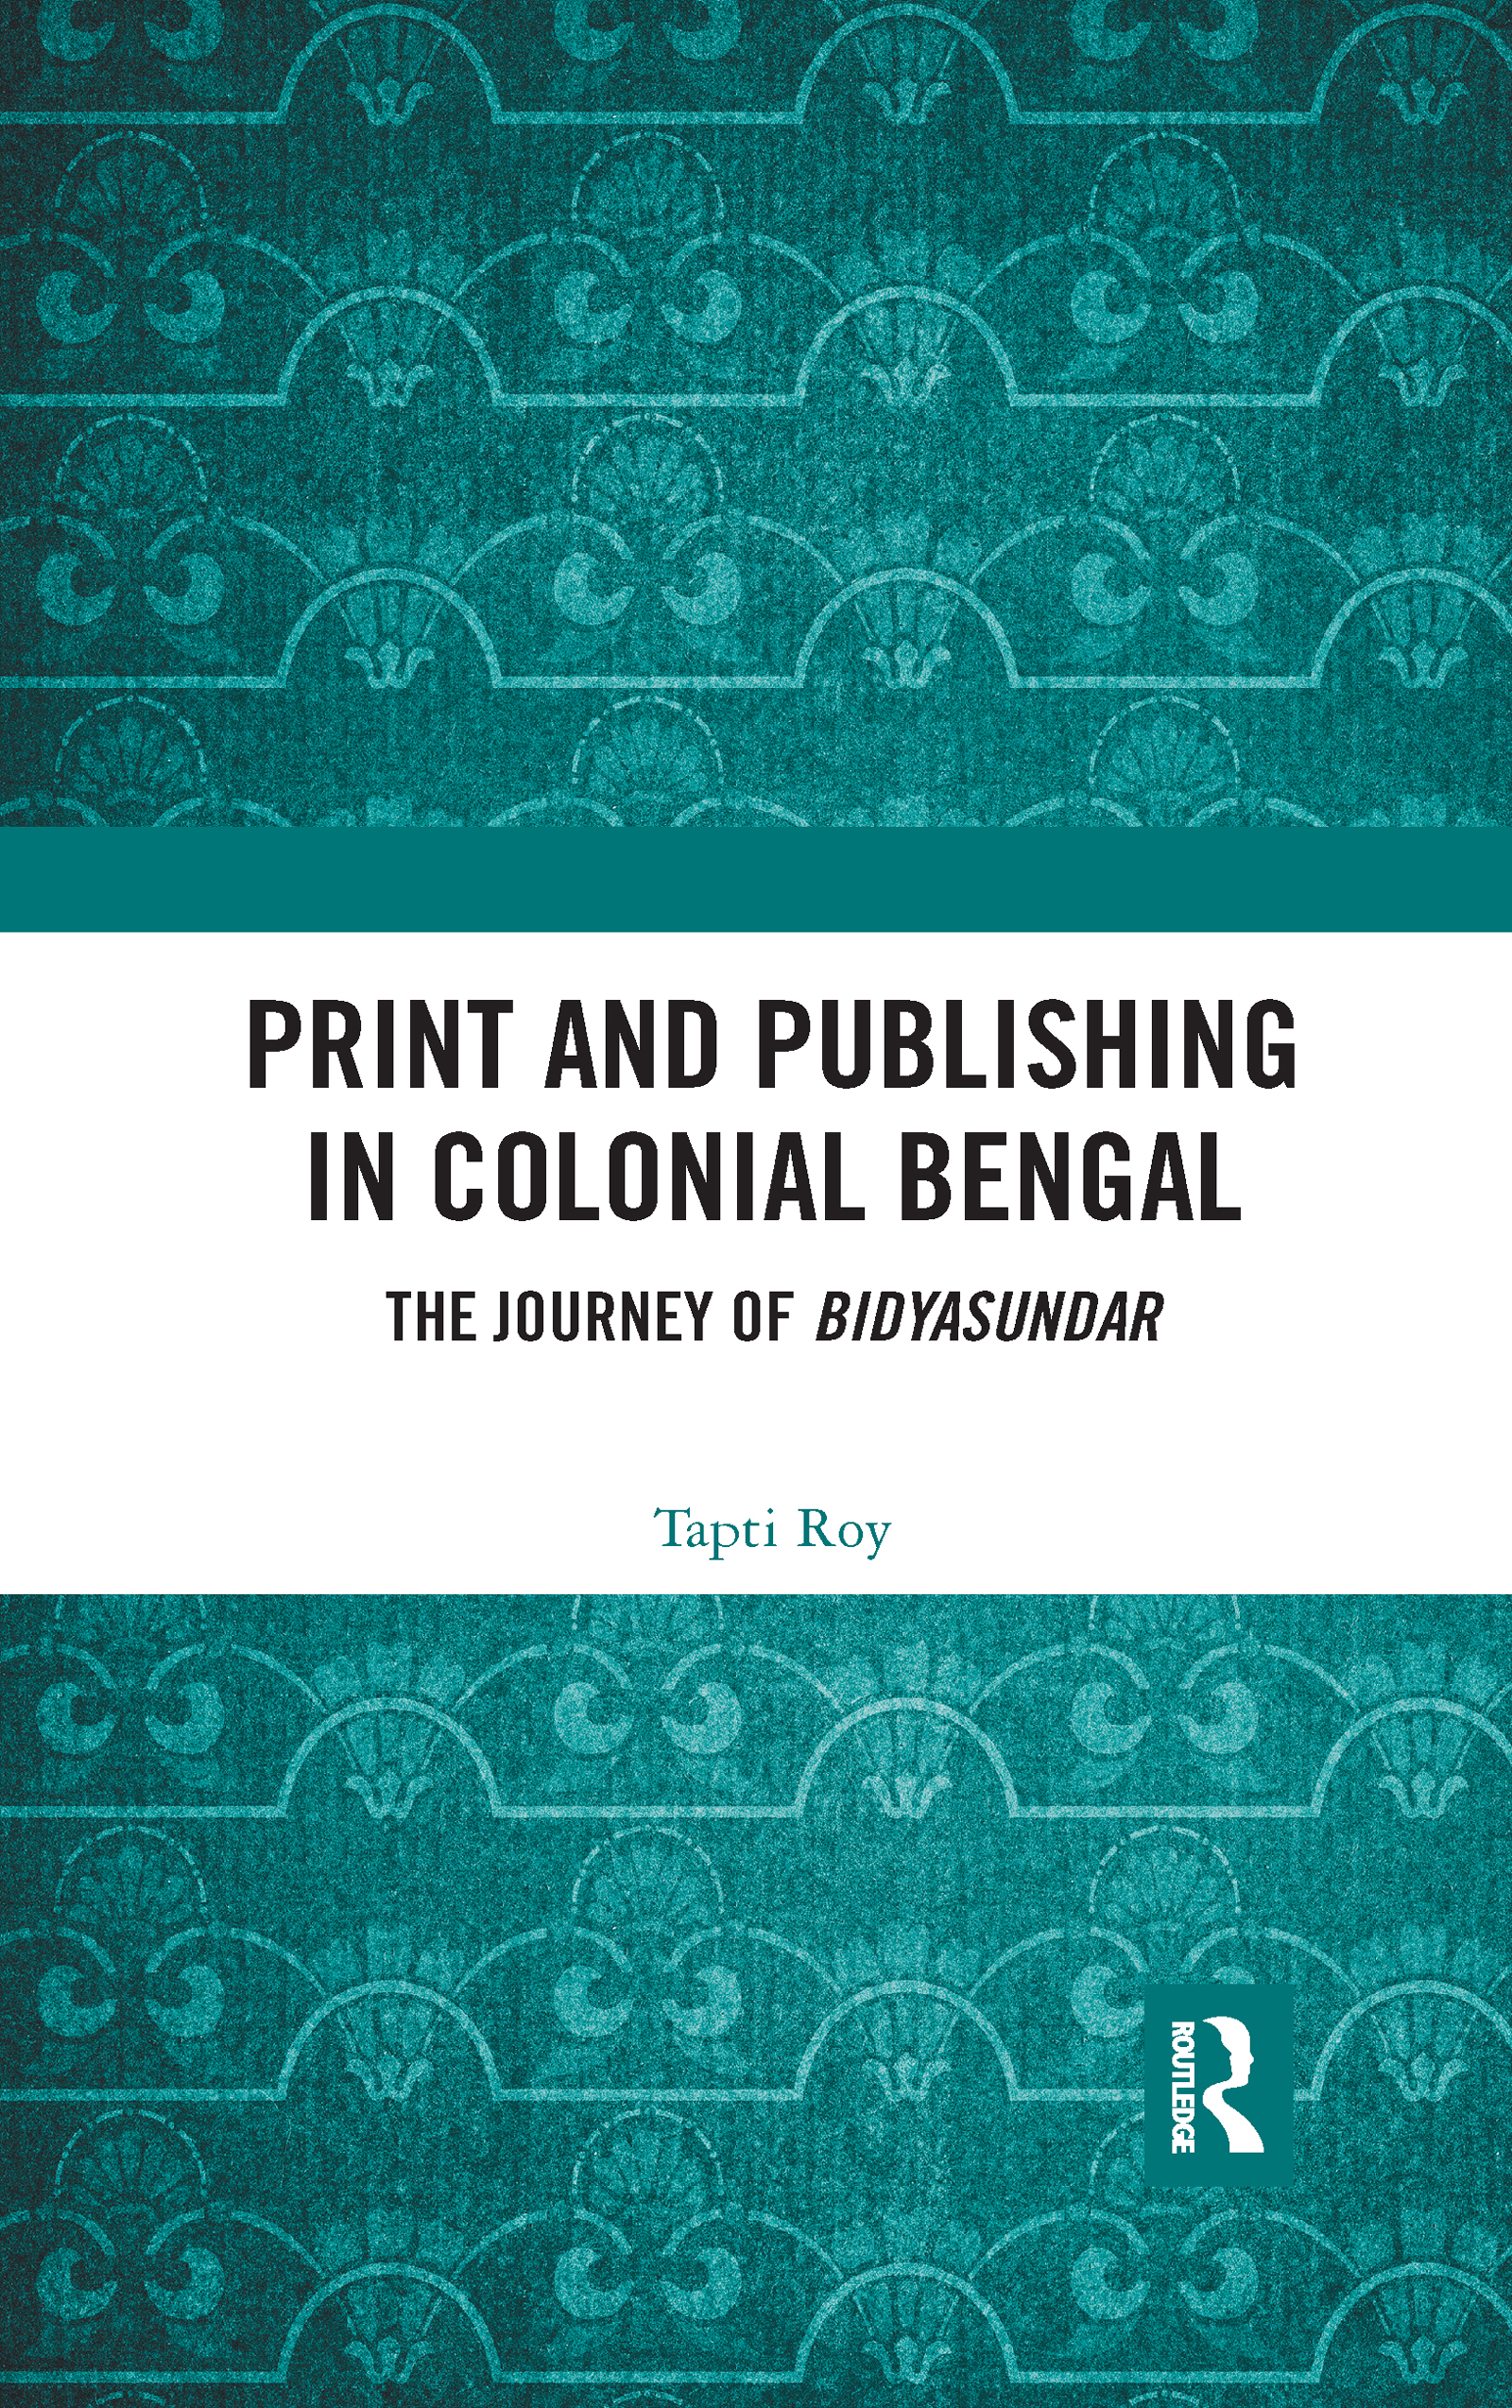 Print and Publishing in Colonial Bengal